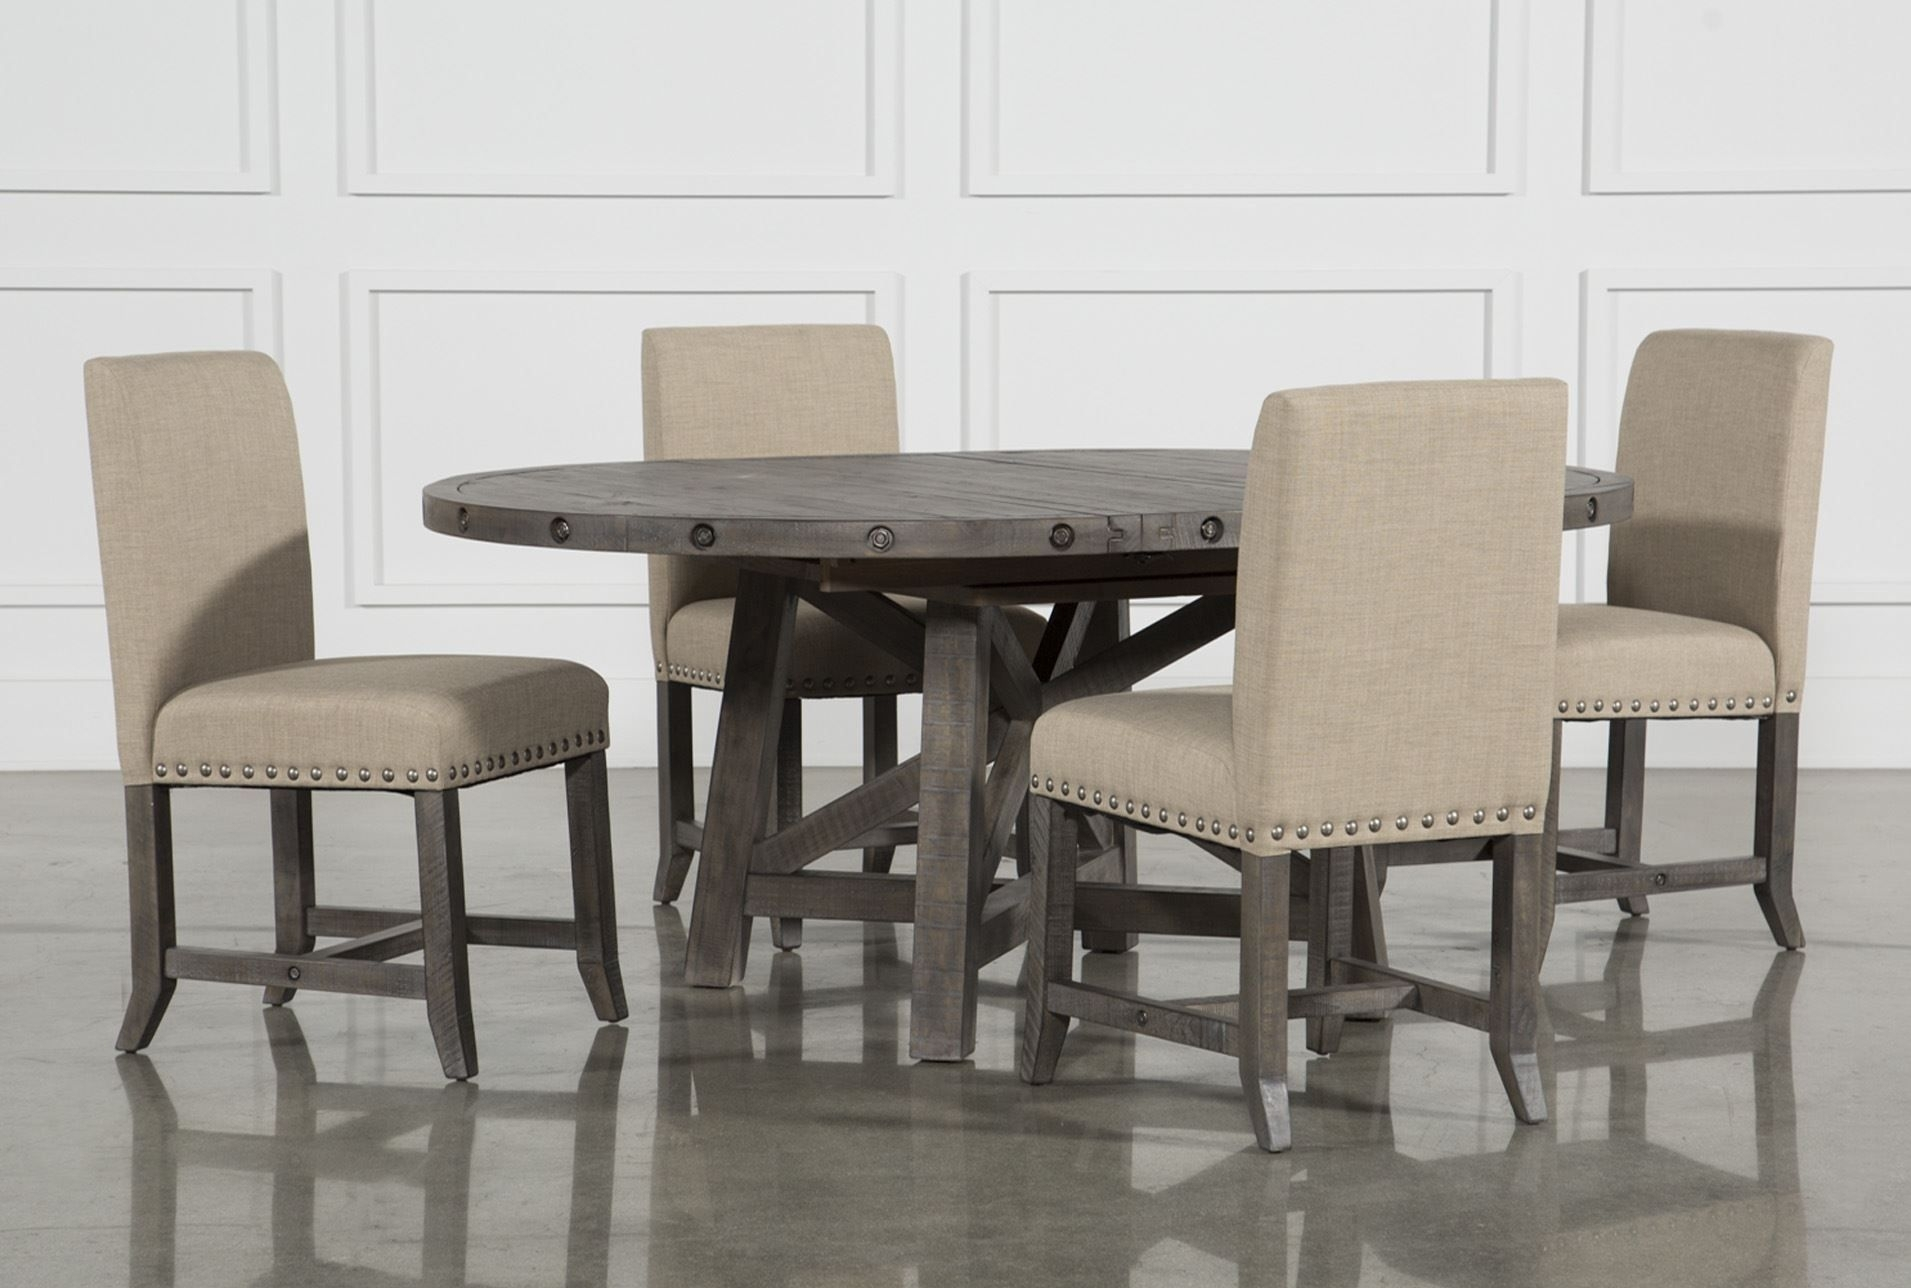 Jaxon Grey 5 Piece Round Extension Dining Set W/upholstered Chairs Intended For Recent Combs Extension Dining Tables (View 15 of 20)